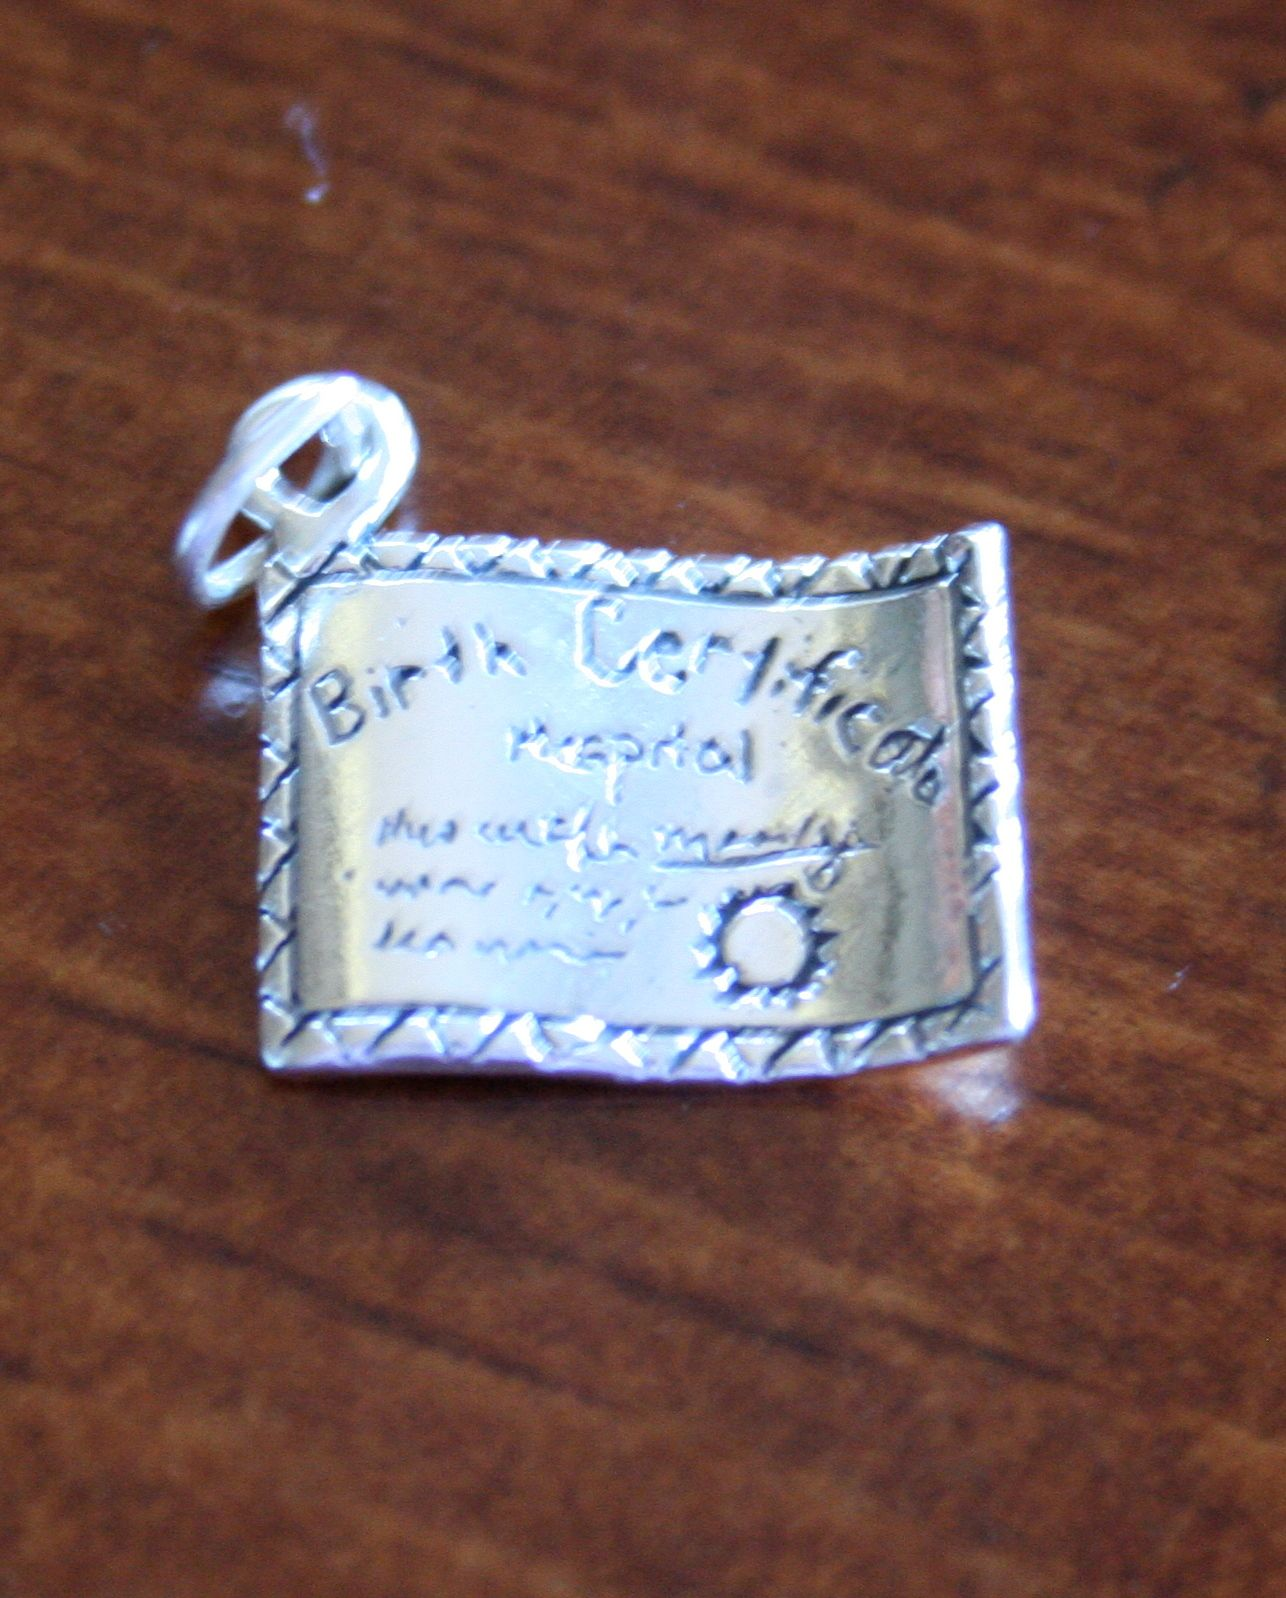 Birth certificate reg 2100 sale 1700 this baby birth this baby birth certificate charm is a great keepsake gift for a new mom mom to be or excited grandma to celebrate the arrival of a new baby order a aiddatafo Gallery